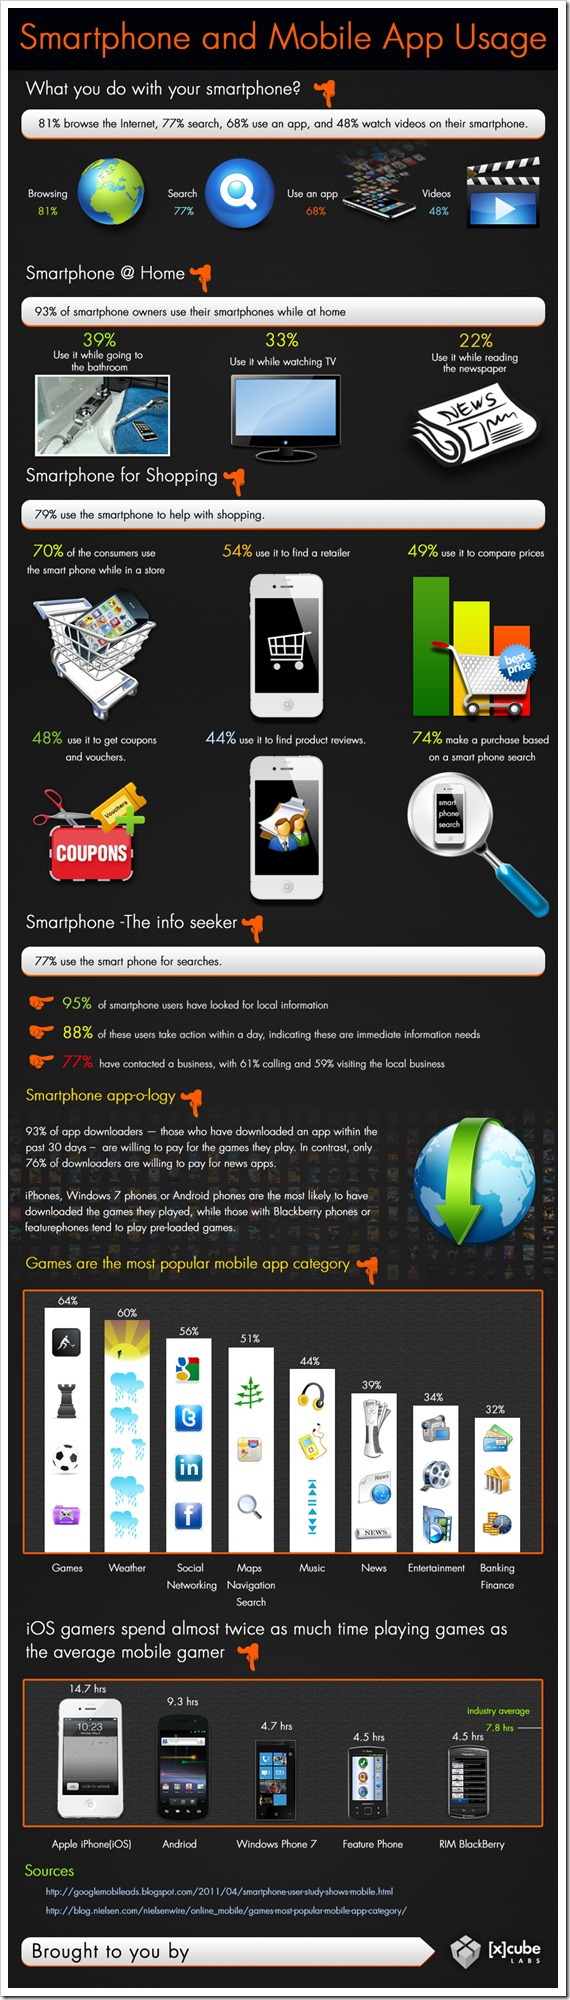 How Do People Use Mobile Apps!